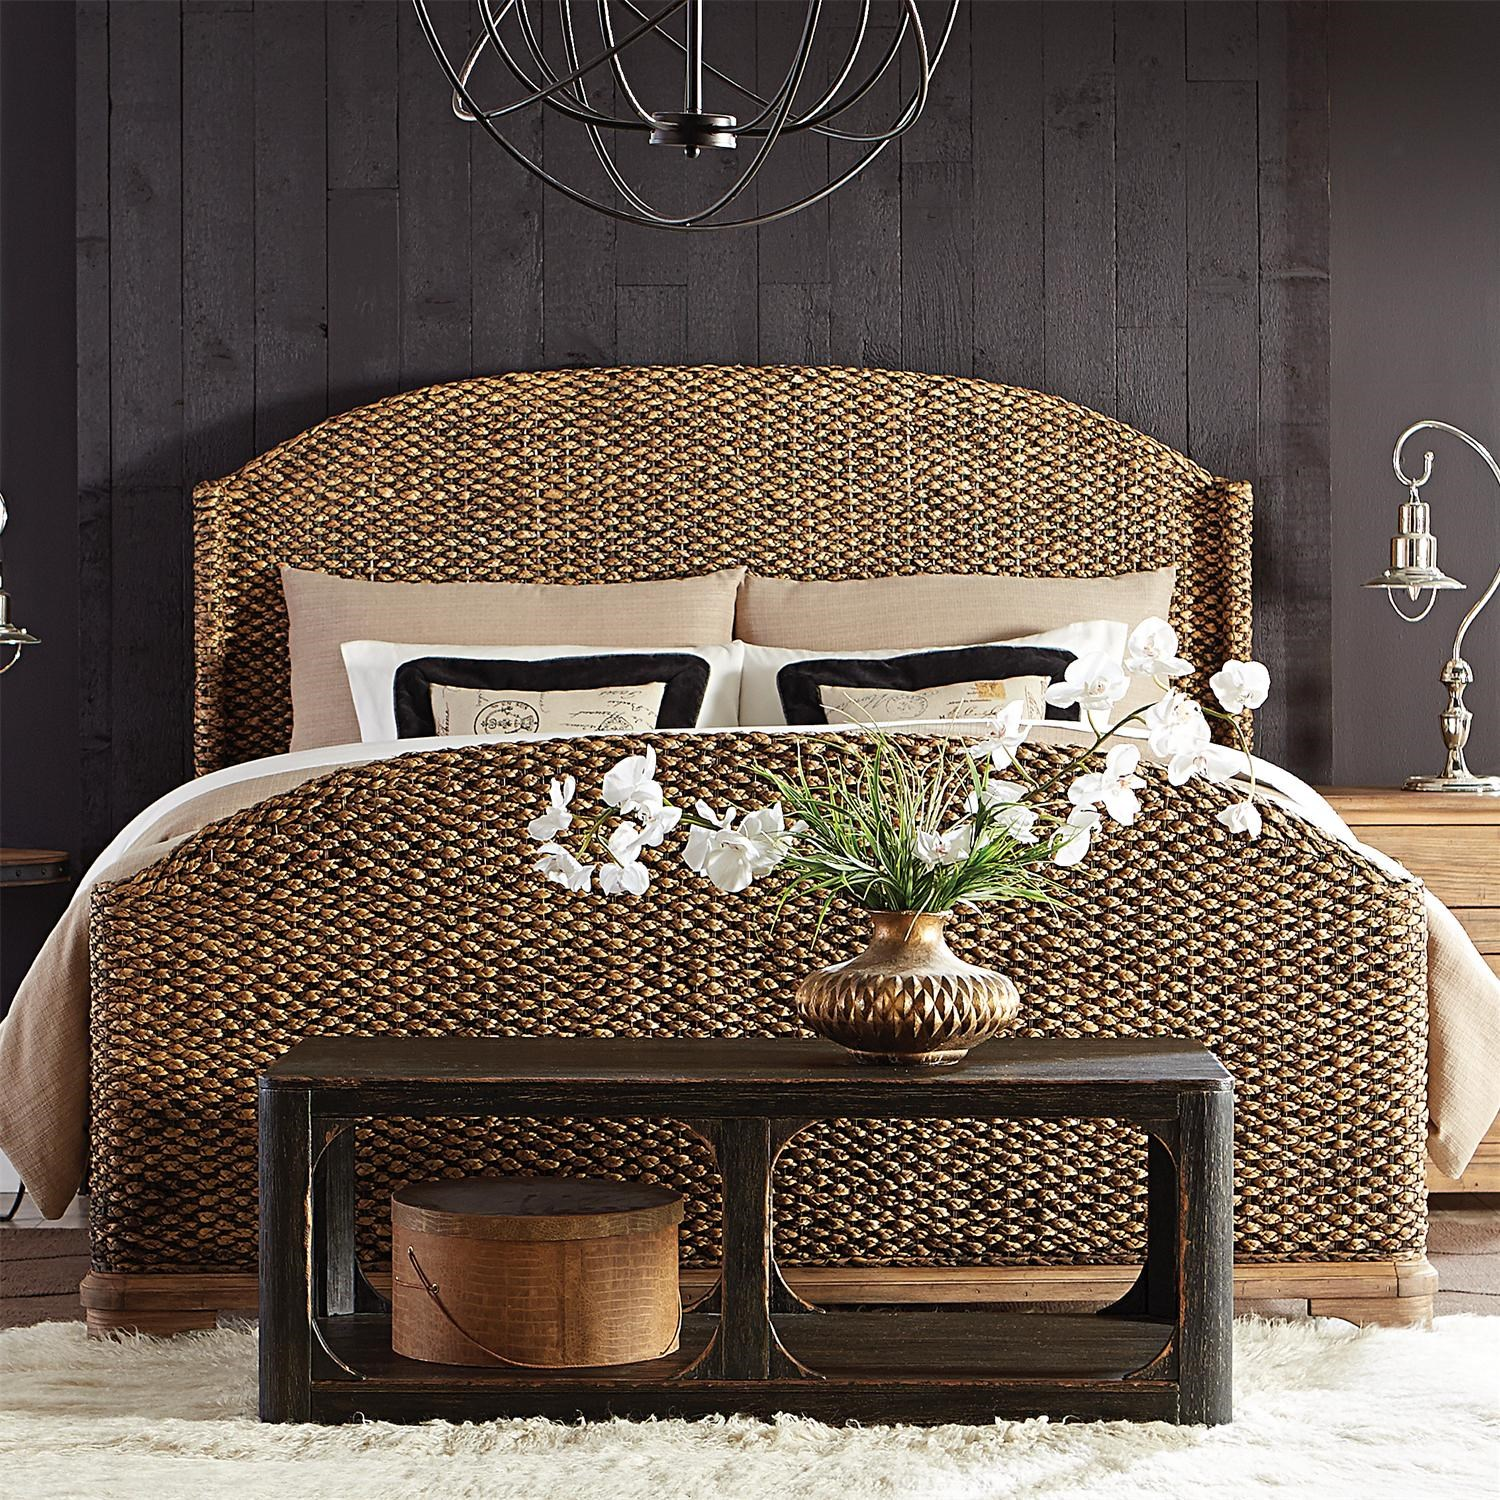 Rattan Twin Headboard | Seagrass Headboard King | Wicker Headboards Twin